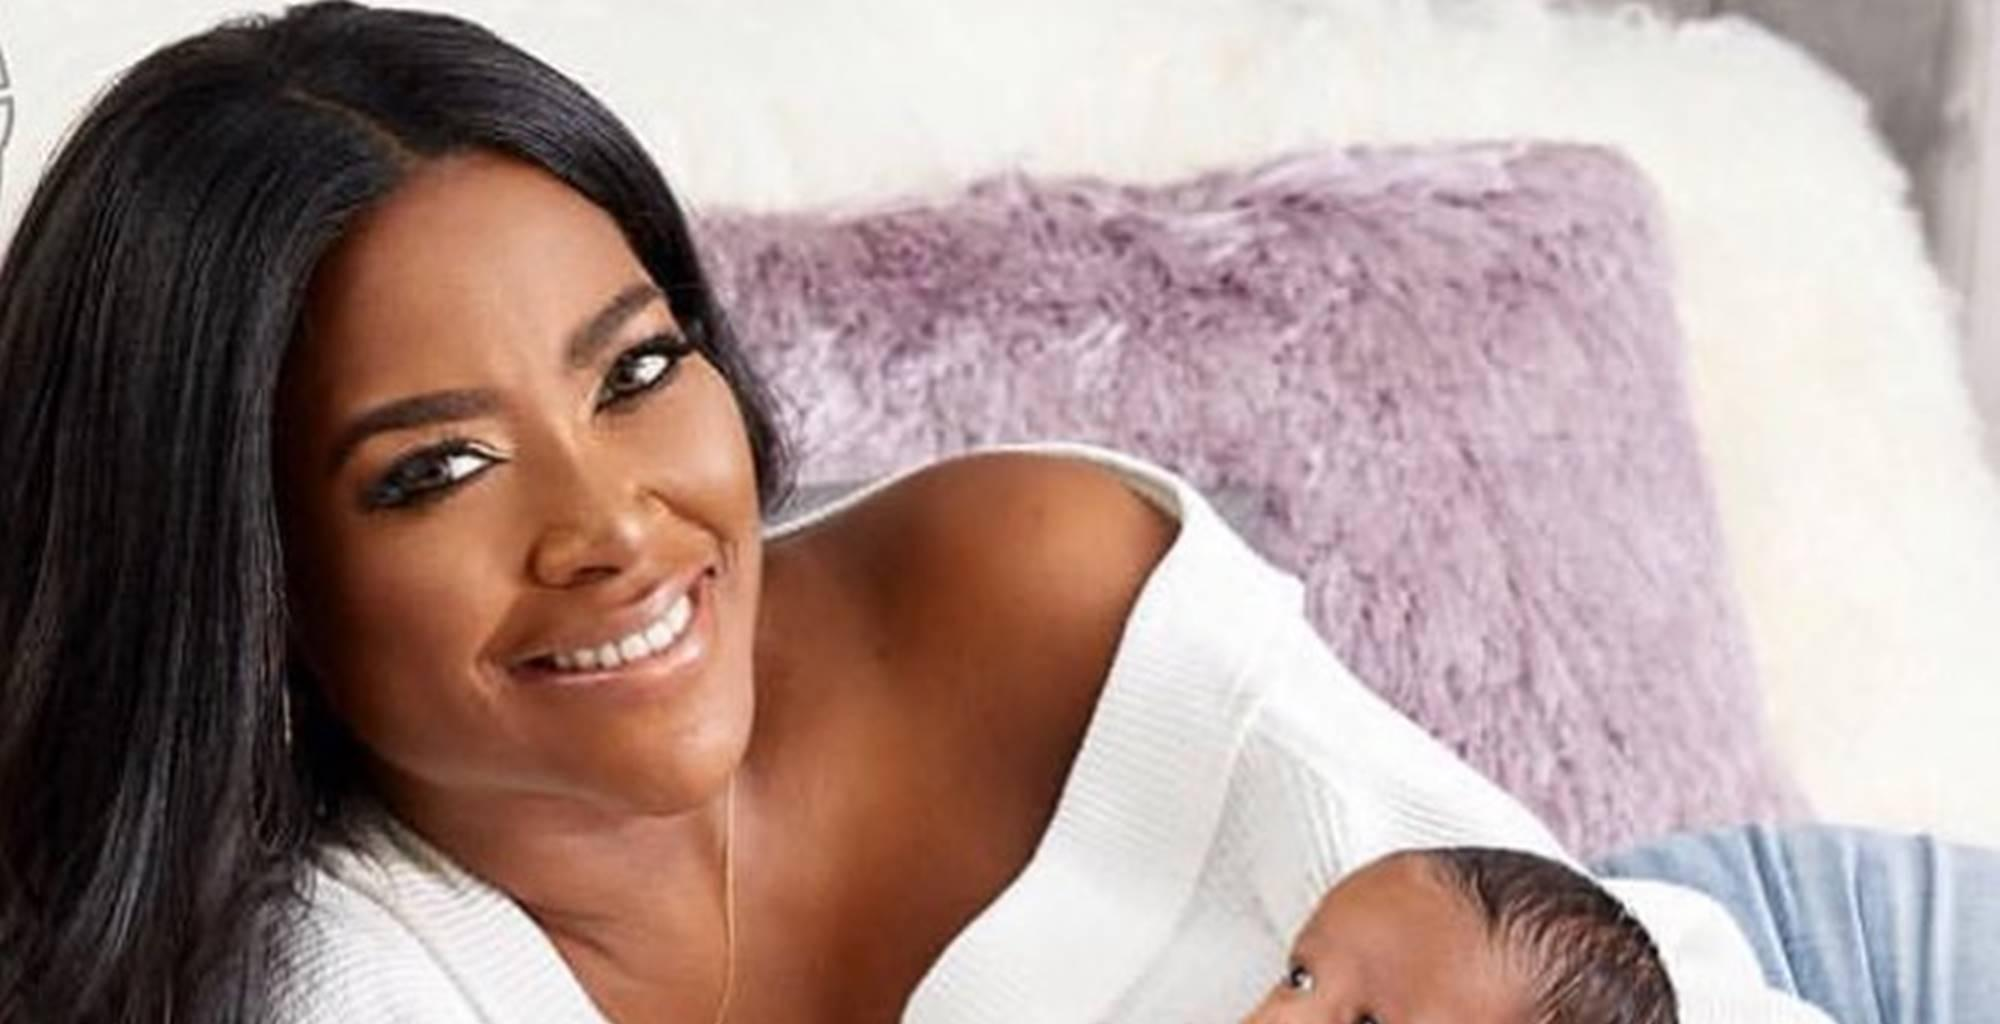 Kenya Moore Is Spending Some Quality Time With Baby Brooklyn At The Beach And Fans Are Happy To See The Mom Without Makeup - Here's Her Latest Photo